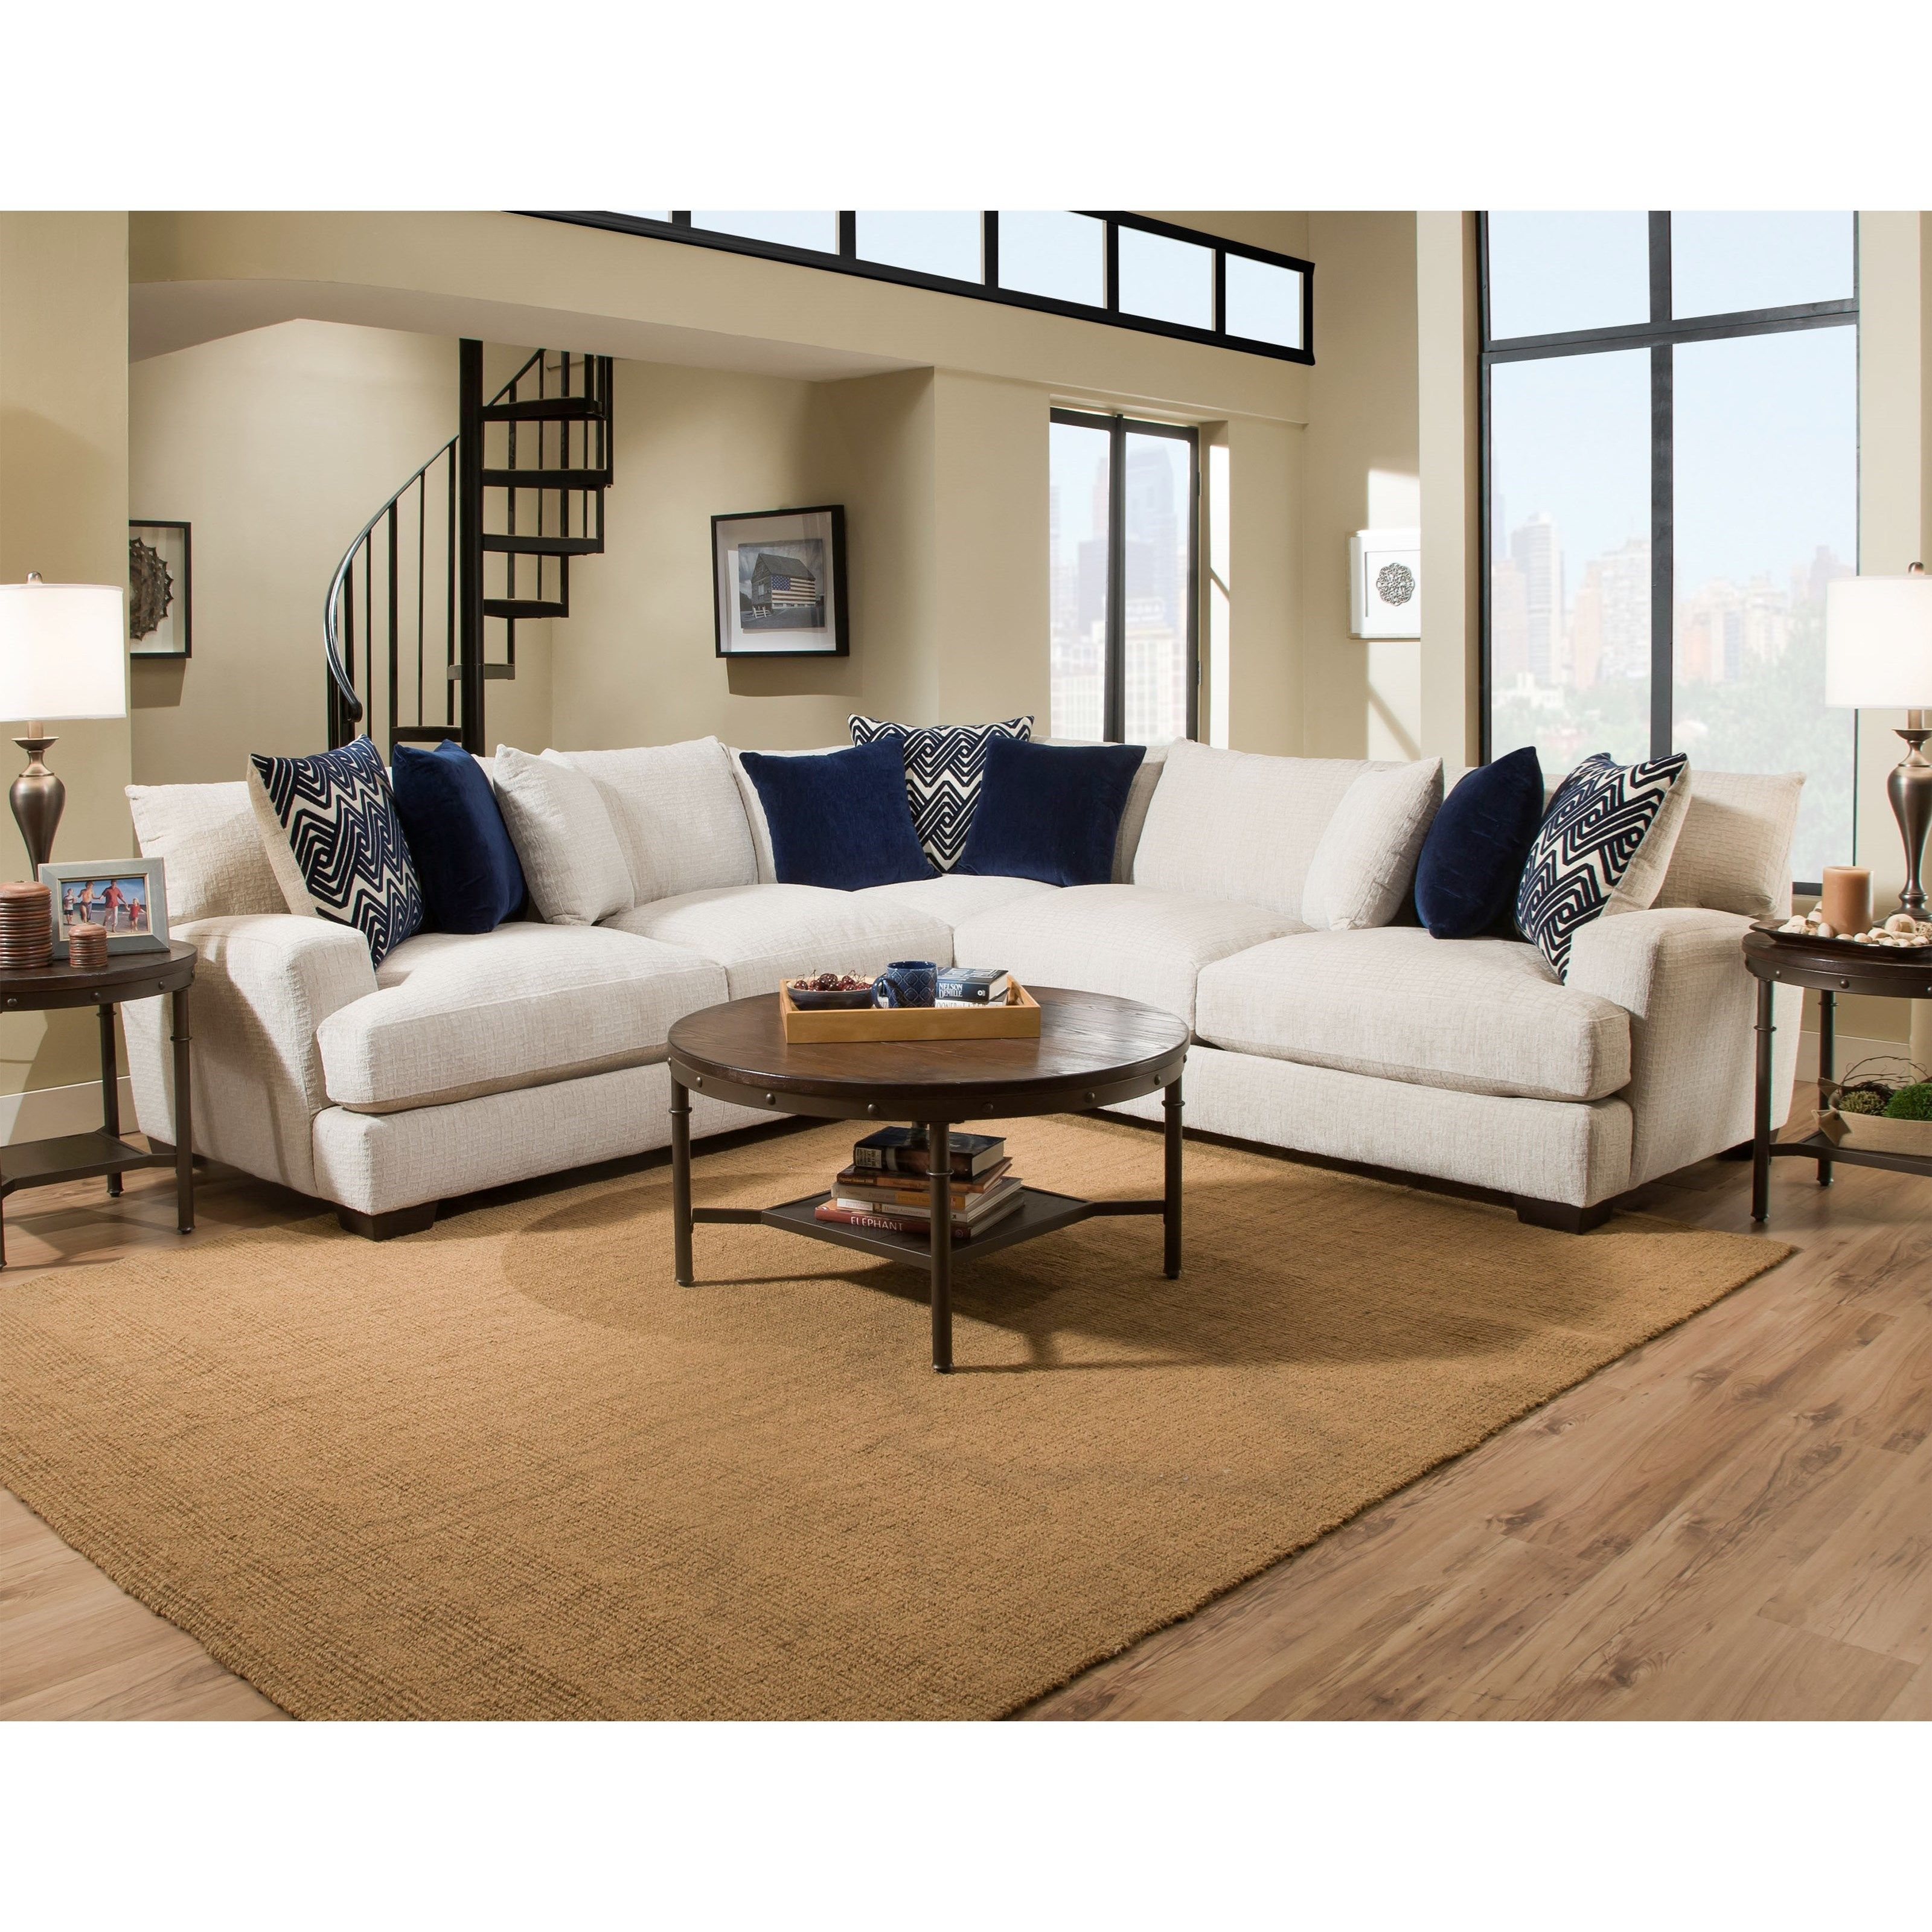 1600 4 Seat Sectional By American Furniture At Darvin Furniture